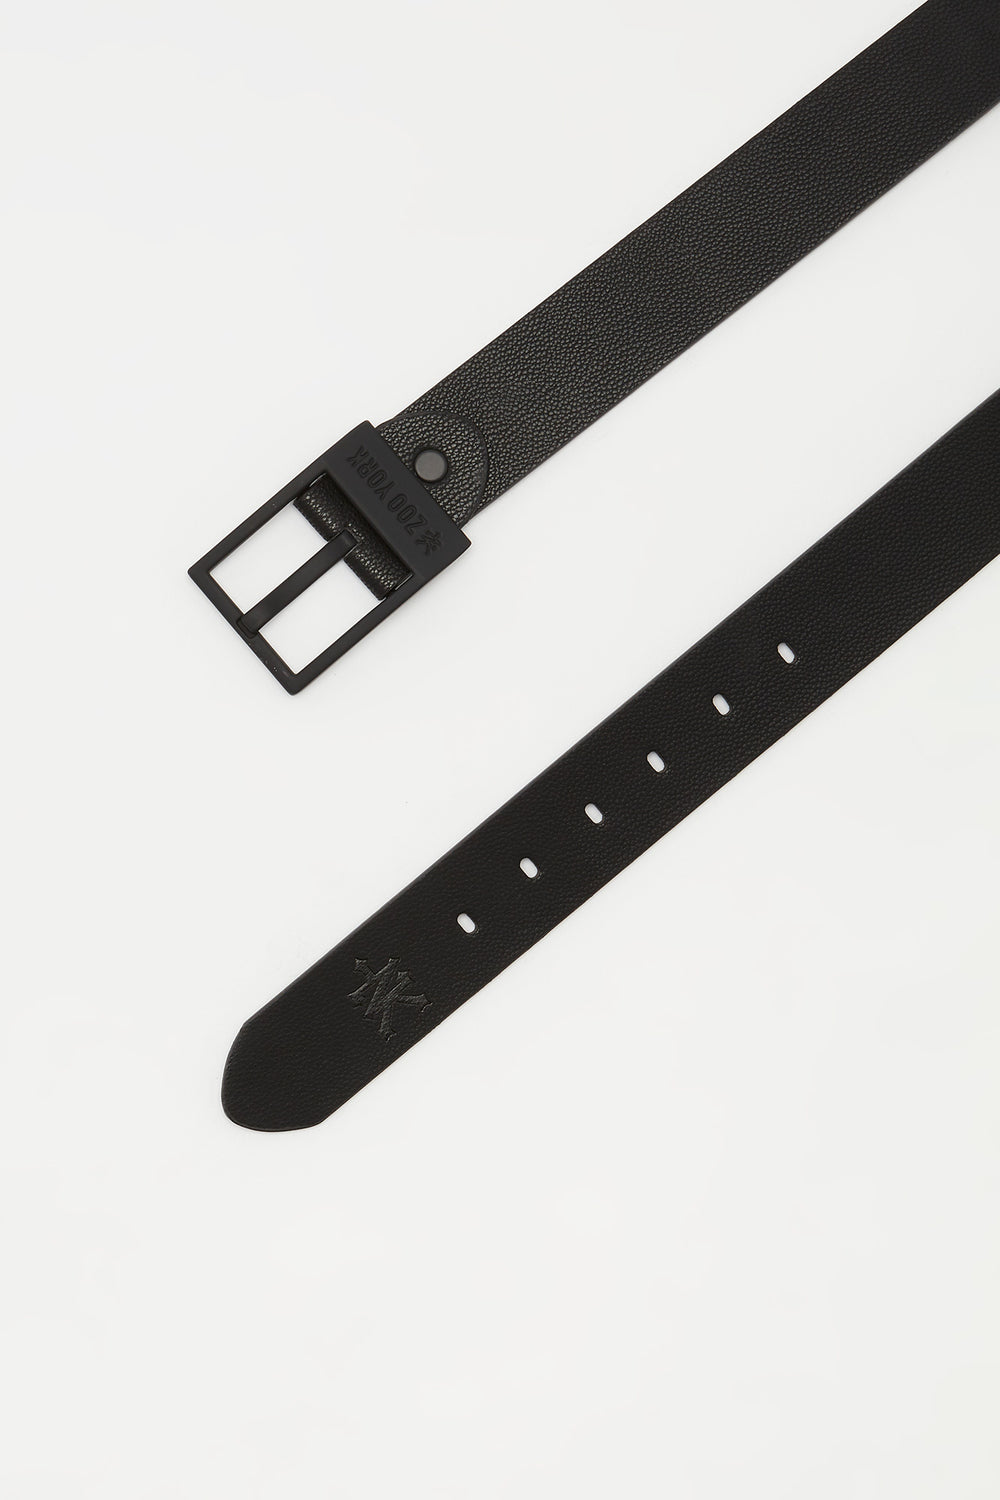 Zoo York Mens Black Faux-Leather Belt Black